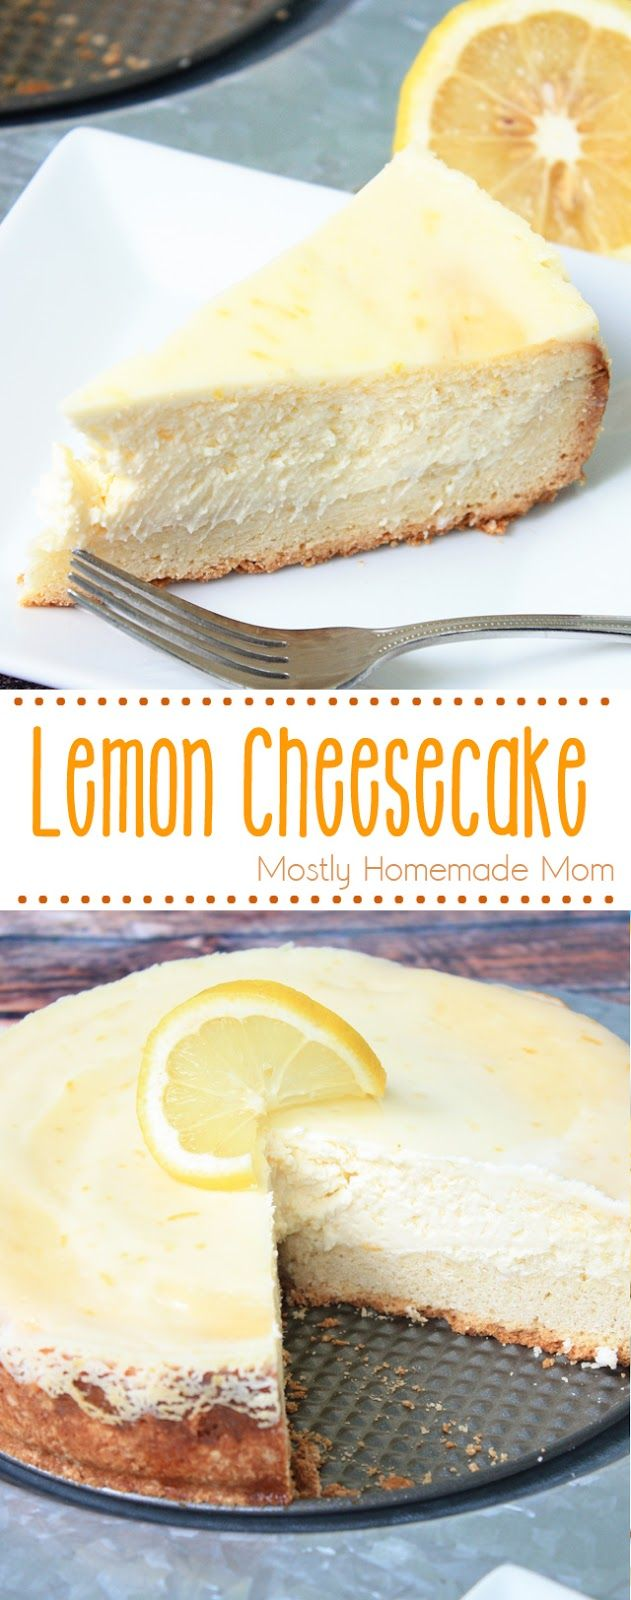 Lemon Cheesecake - absolutely perfect and easy to make! A shortbread crust, lemon cheesecake filling, and a sour cream topping make this dessert recipe complete!